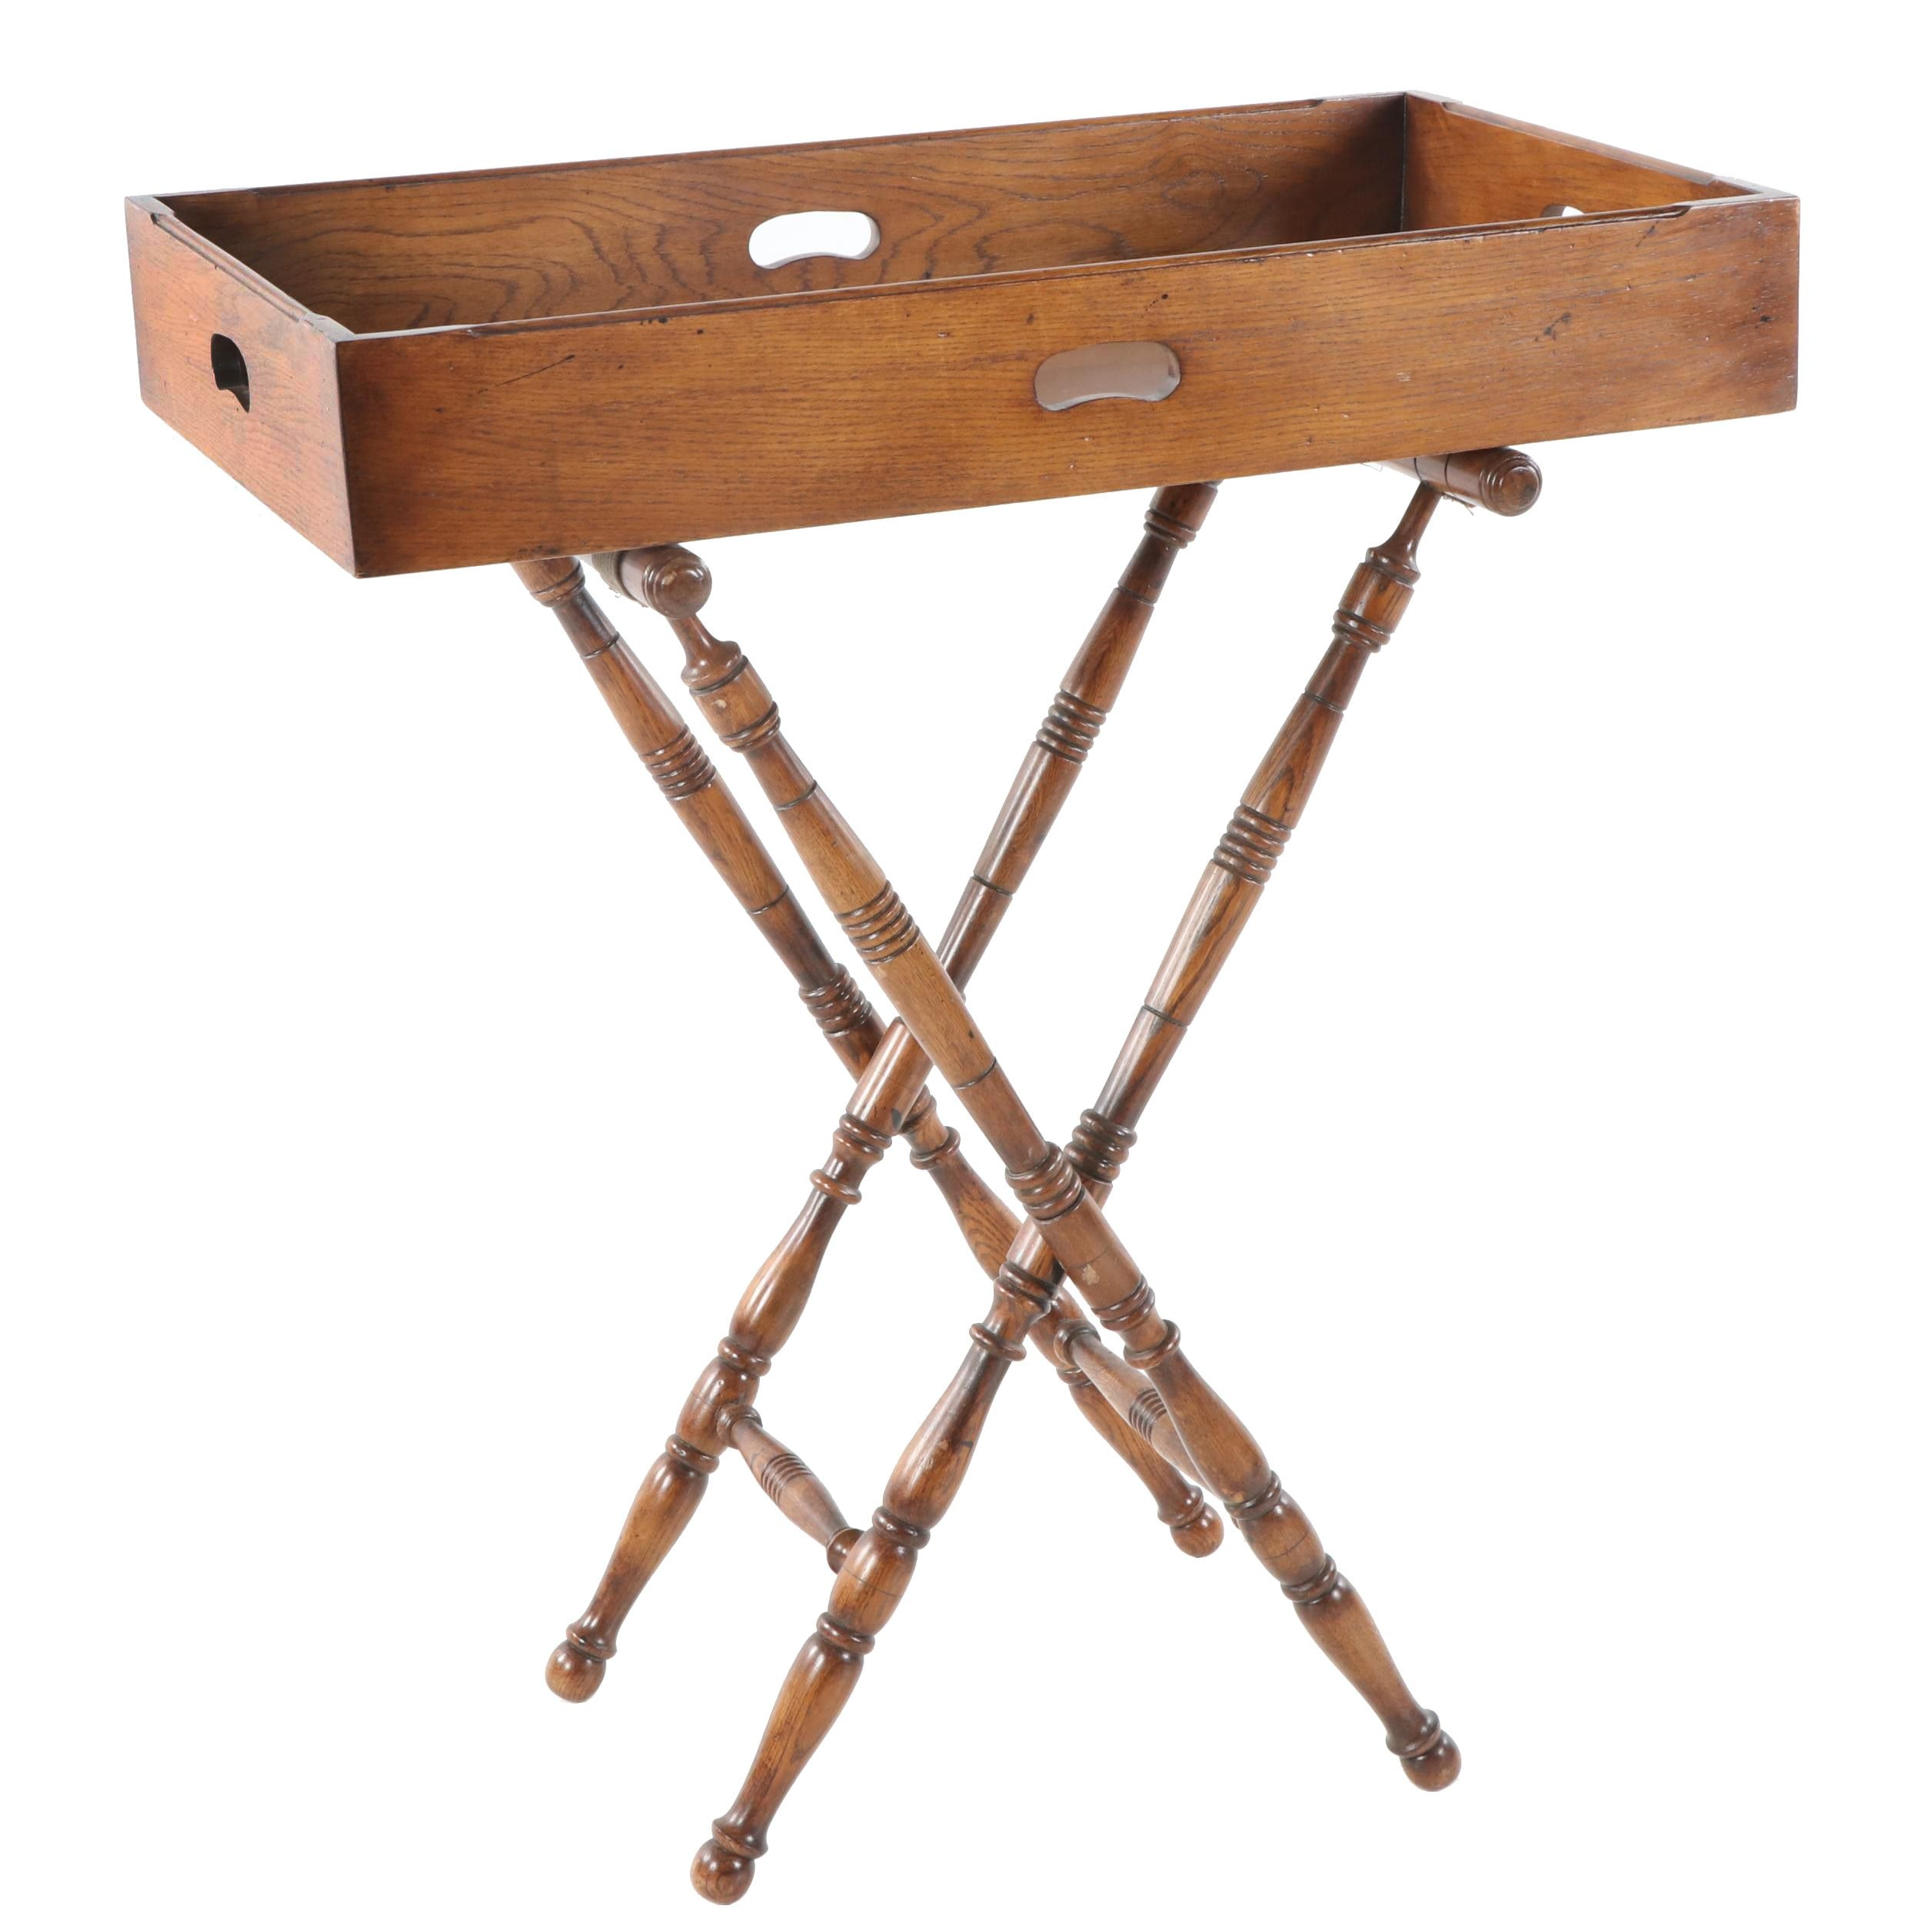 Campaign Style Stained Oak Tray on Folding Stand, 20th Century